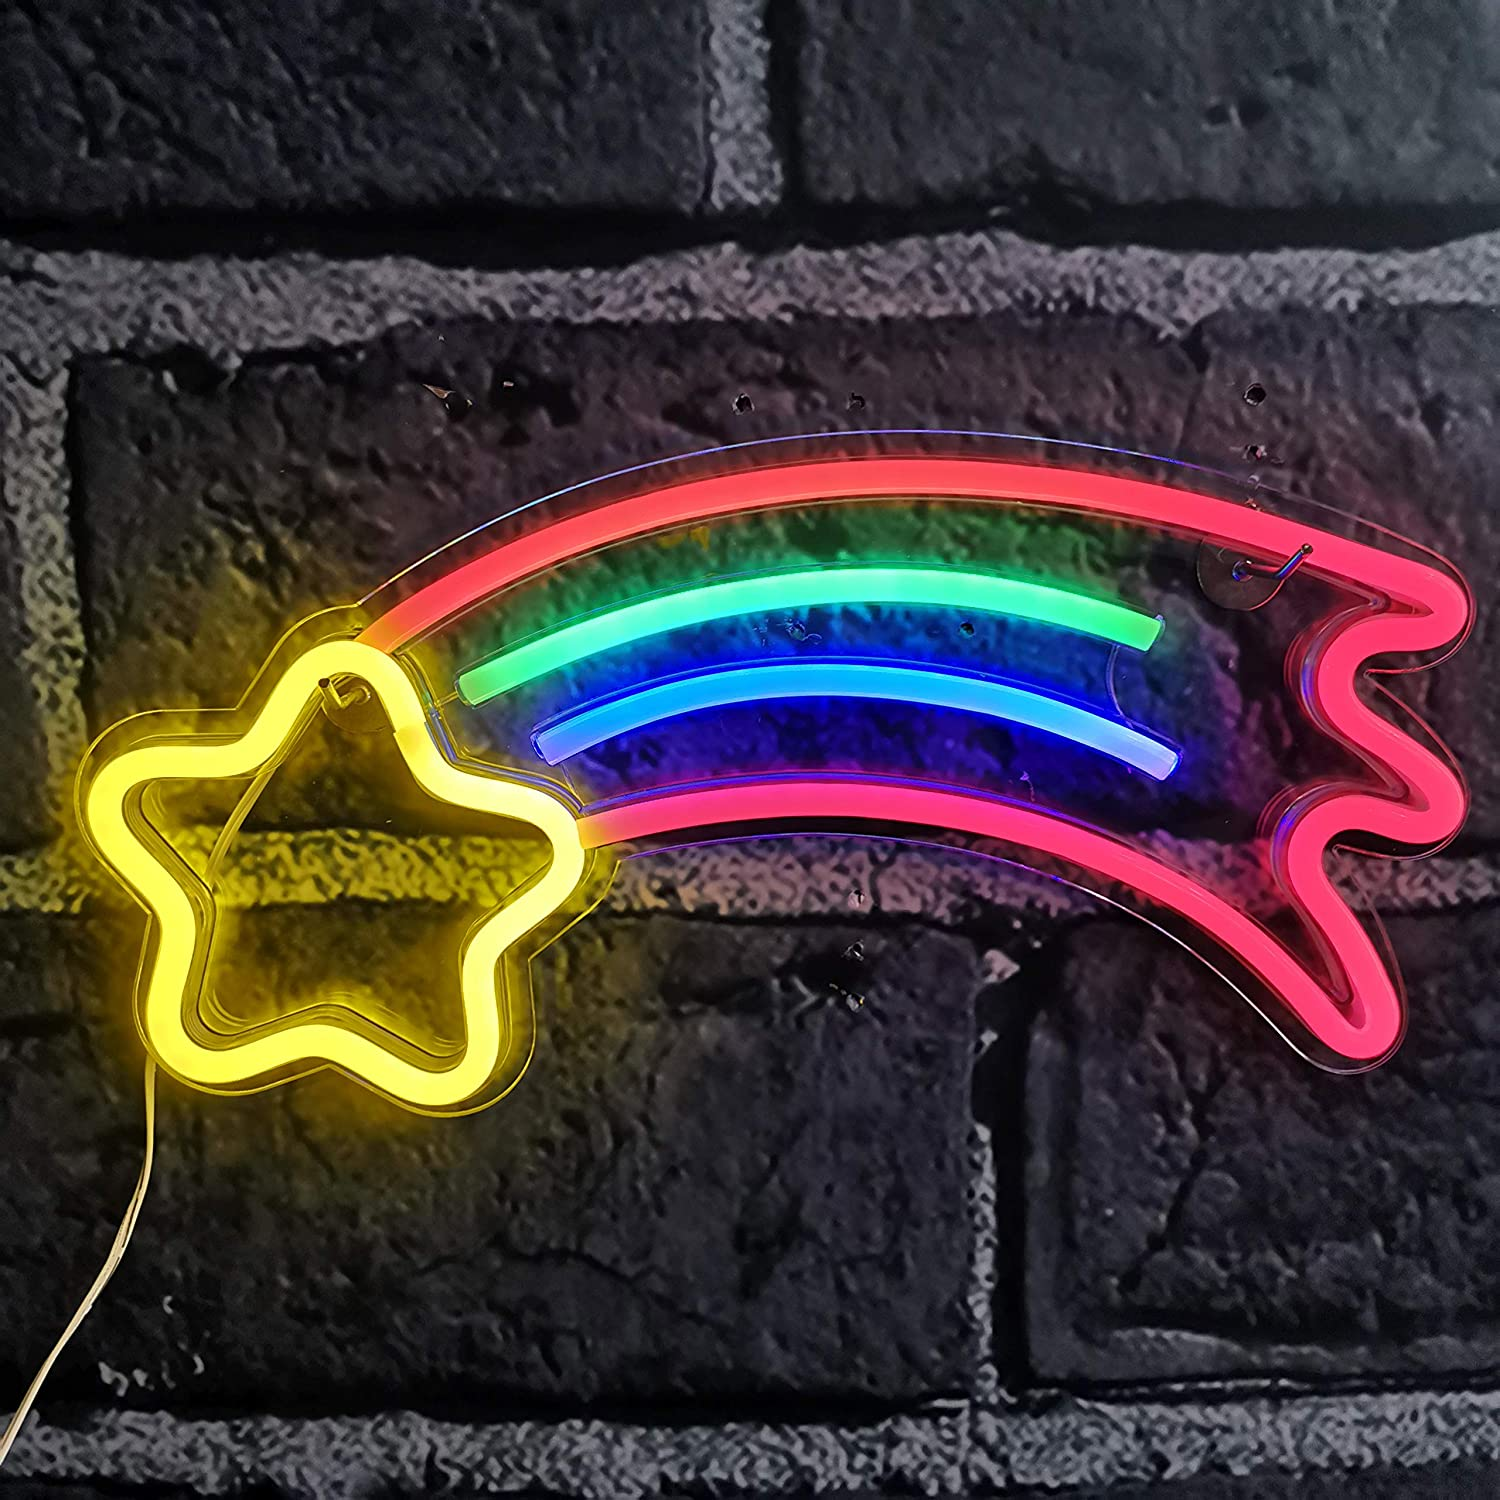 Meteor Neon Lights, Festival Neon Wall Signs Light Art Neon Sign for Home Decoration,Bedroom, Lounge, Office, Wedding, Christmas, Valentine's Day Party Operated by USB